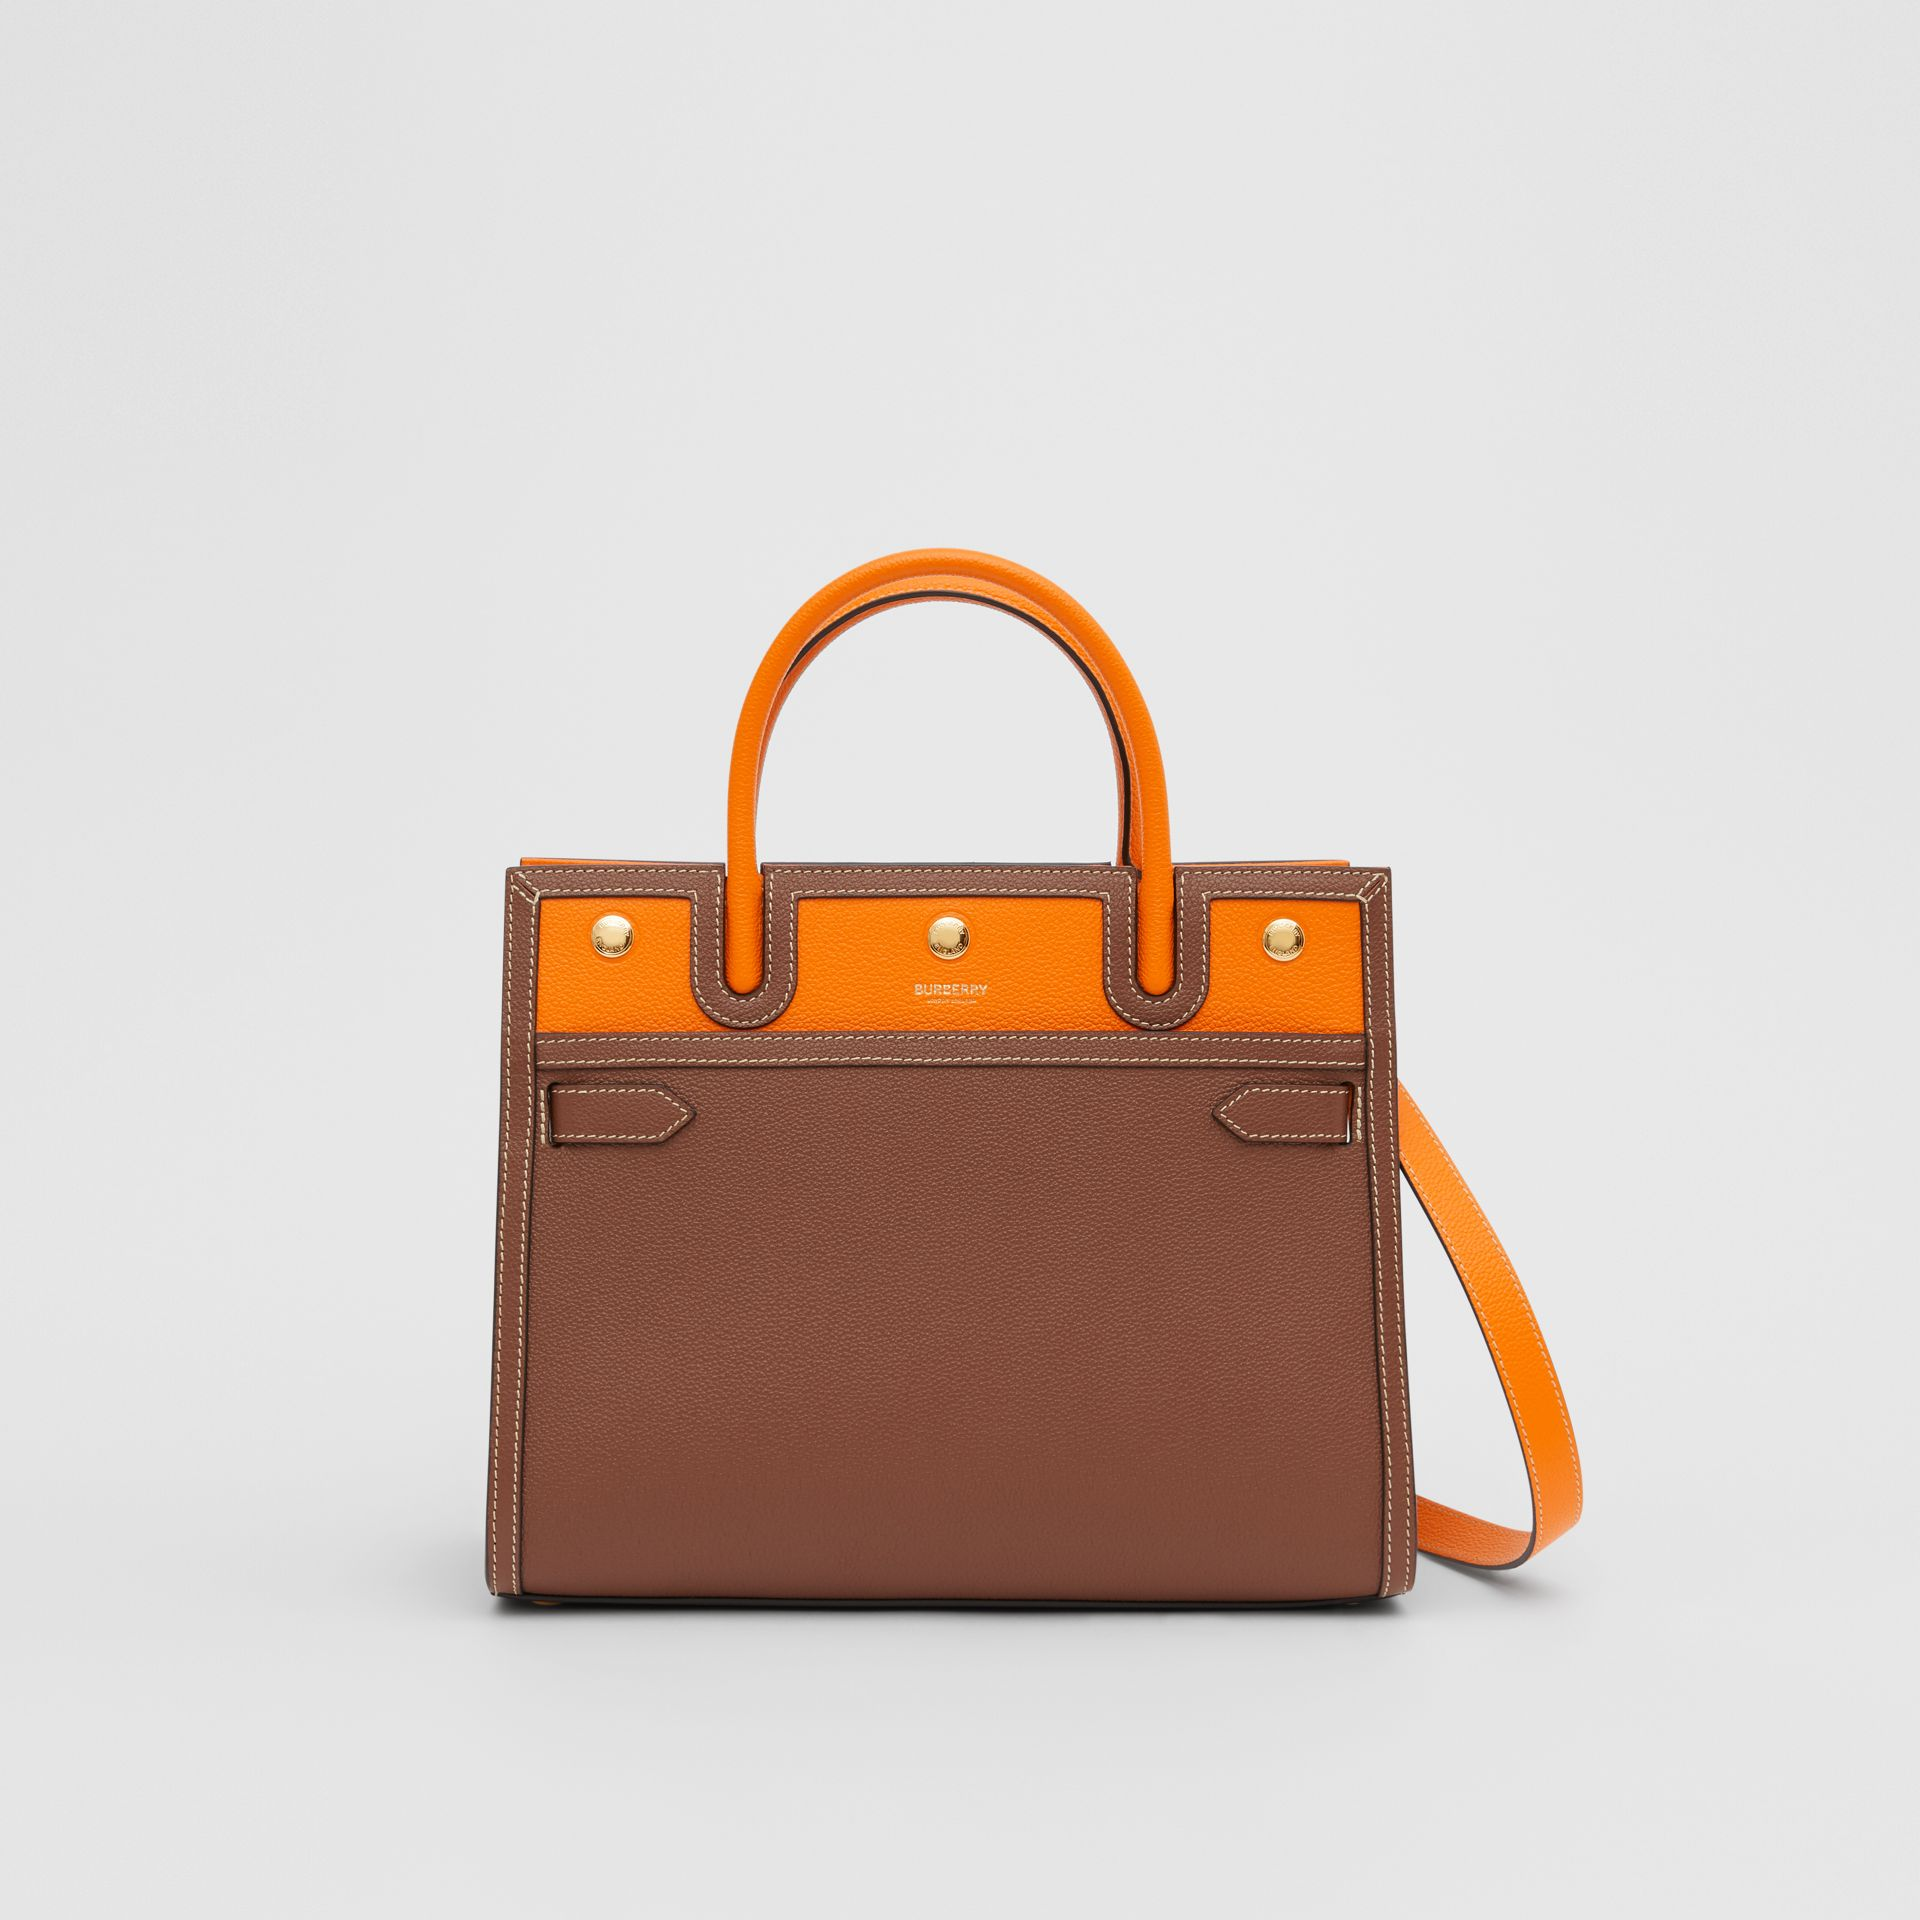 Small Leather Two-handle Title Bag in Tan/bright Orange - Women | Burberry - gallery image 0